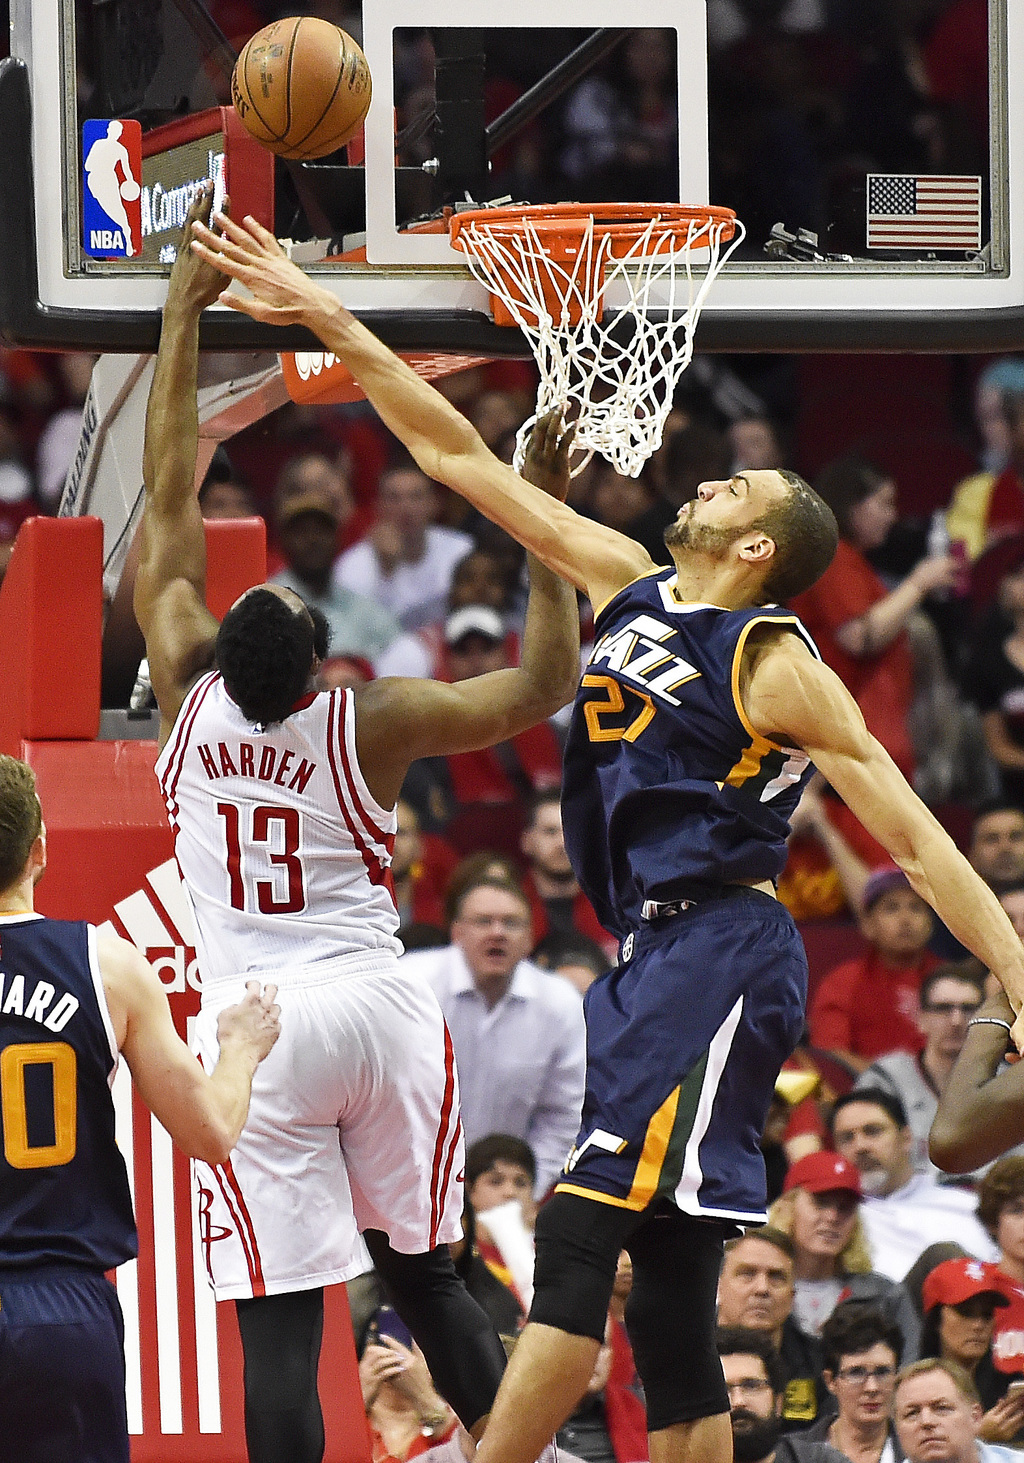 Houston Rockets guard James Harden (13) shoots as Utah Jazz center Rudy Gobert defends in the second half of an NBA basketball game, We...